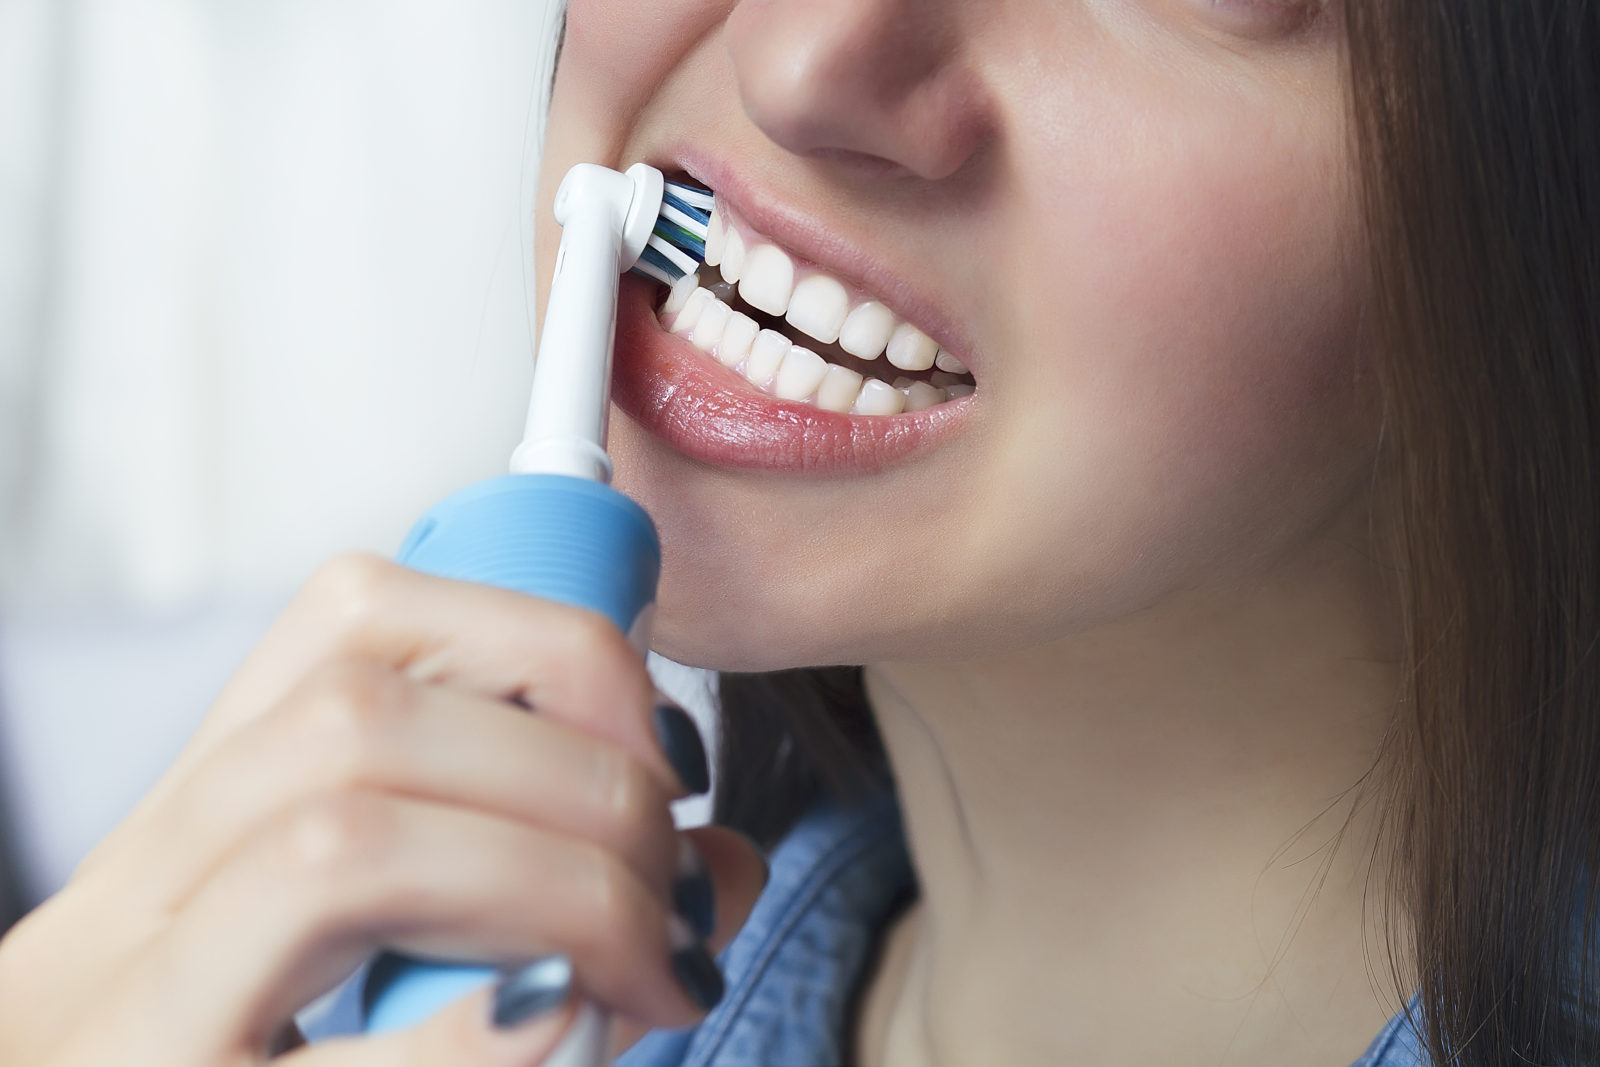 How Often Do I Need To Get A New Toothbrush?